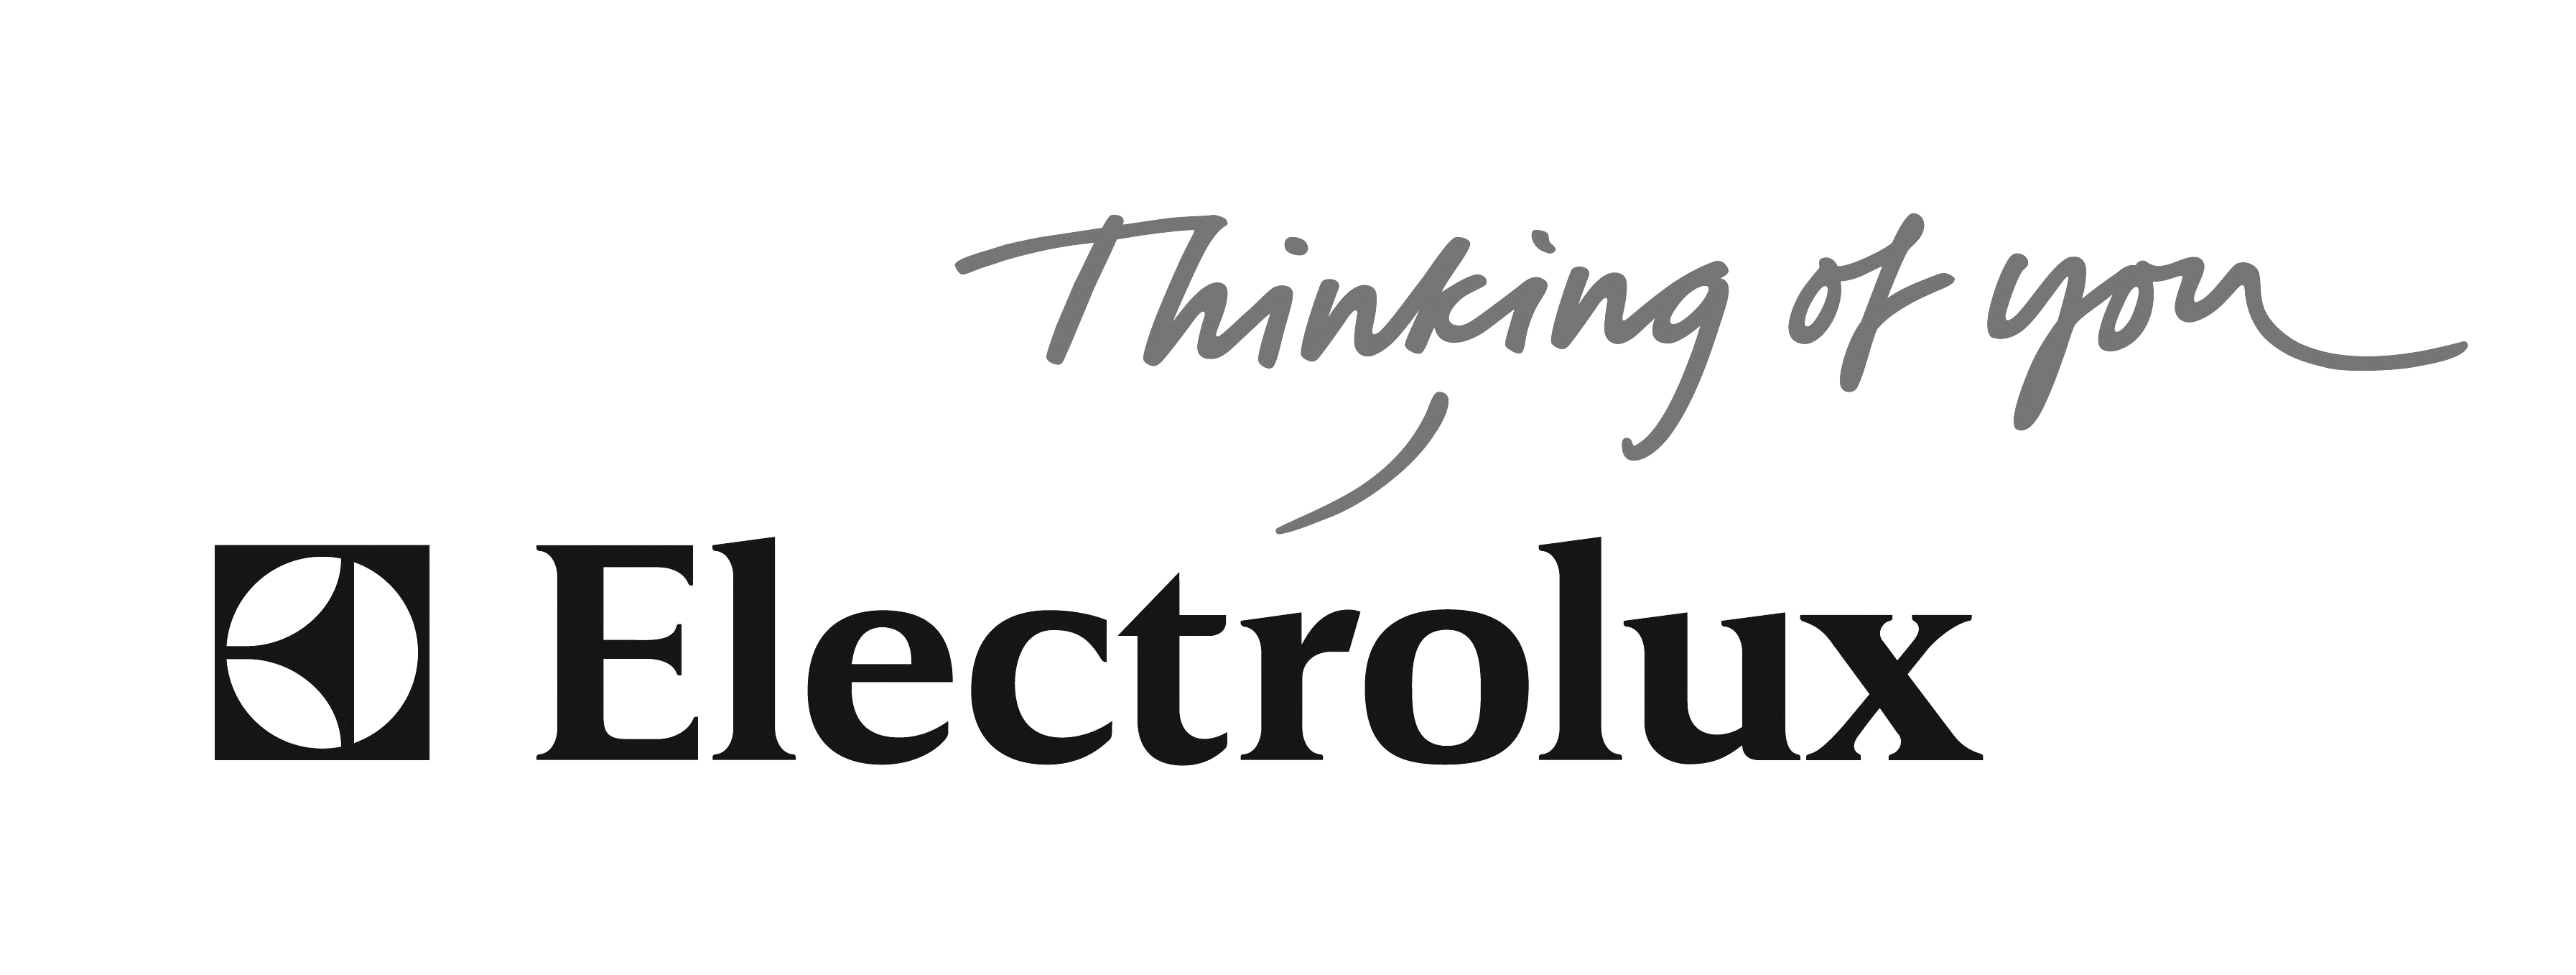 Electrolux-Thinking of you